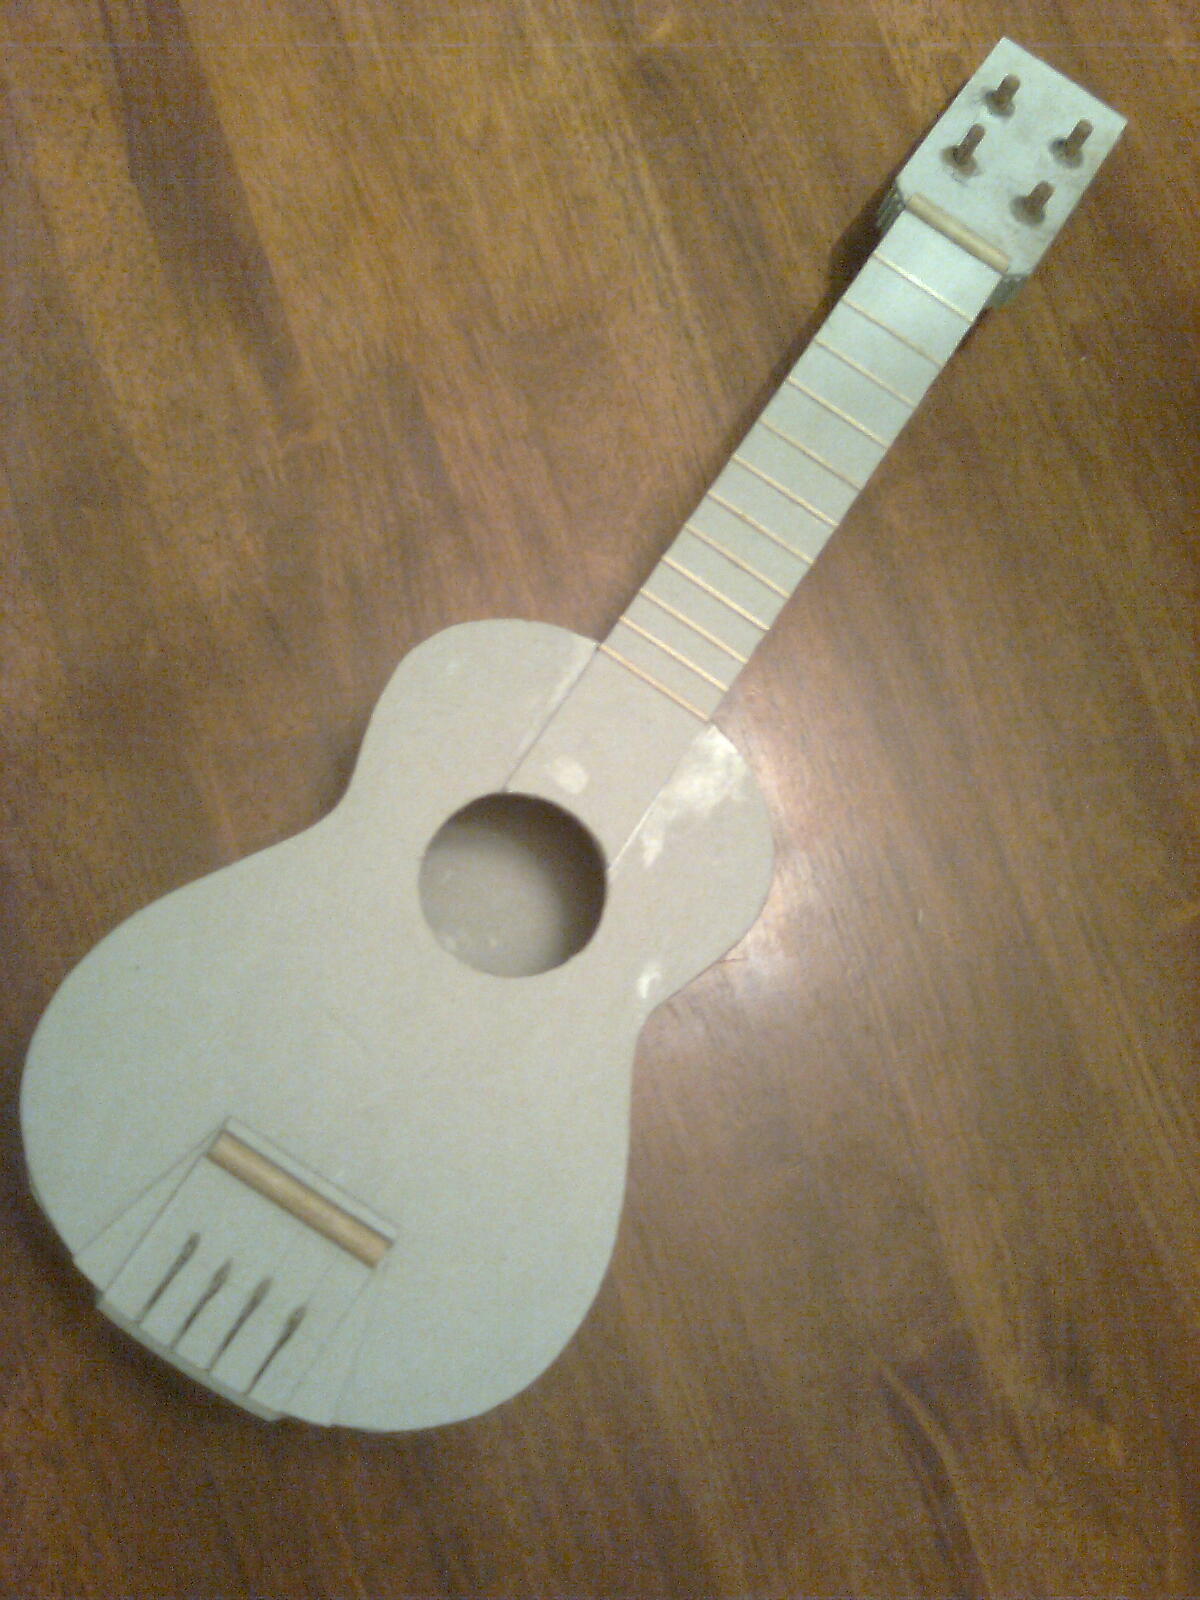 Make a Ukulele out of Cardboard